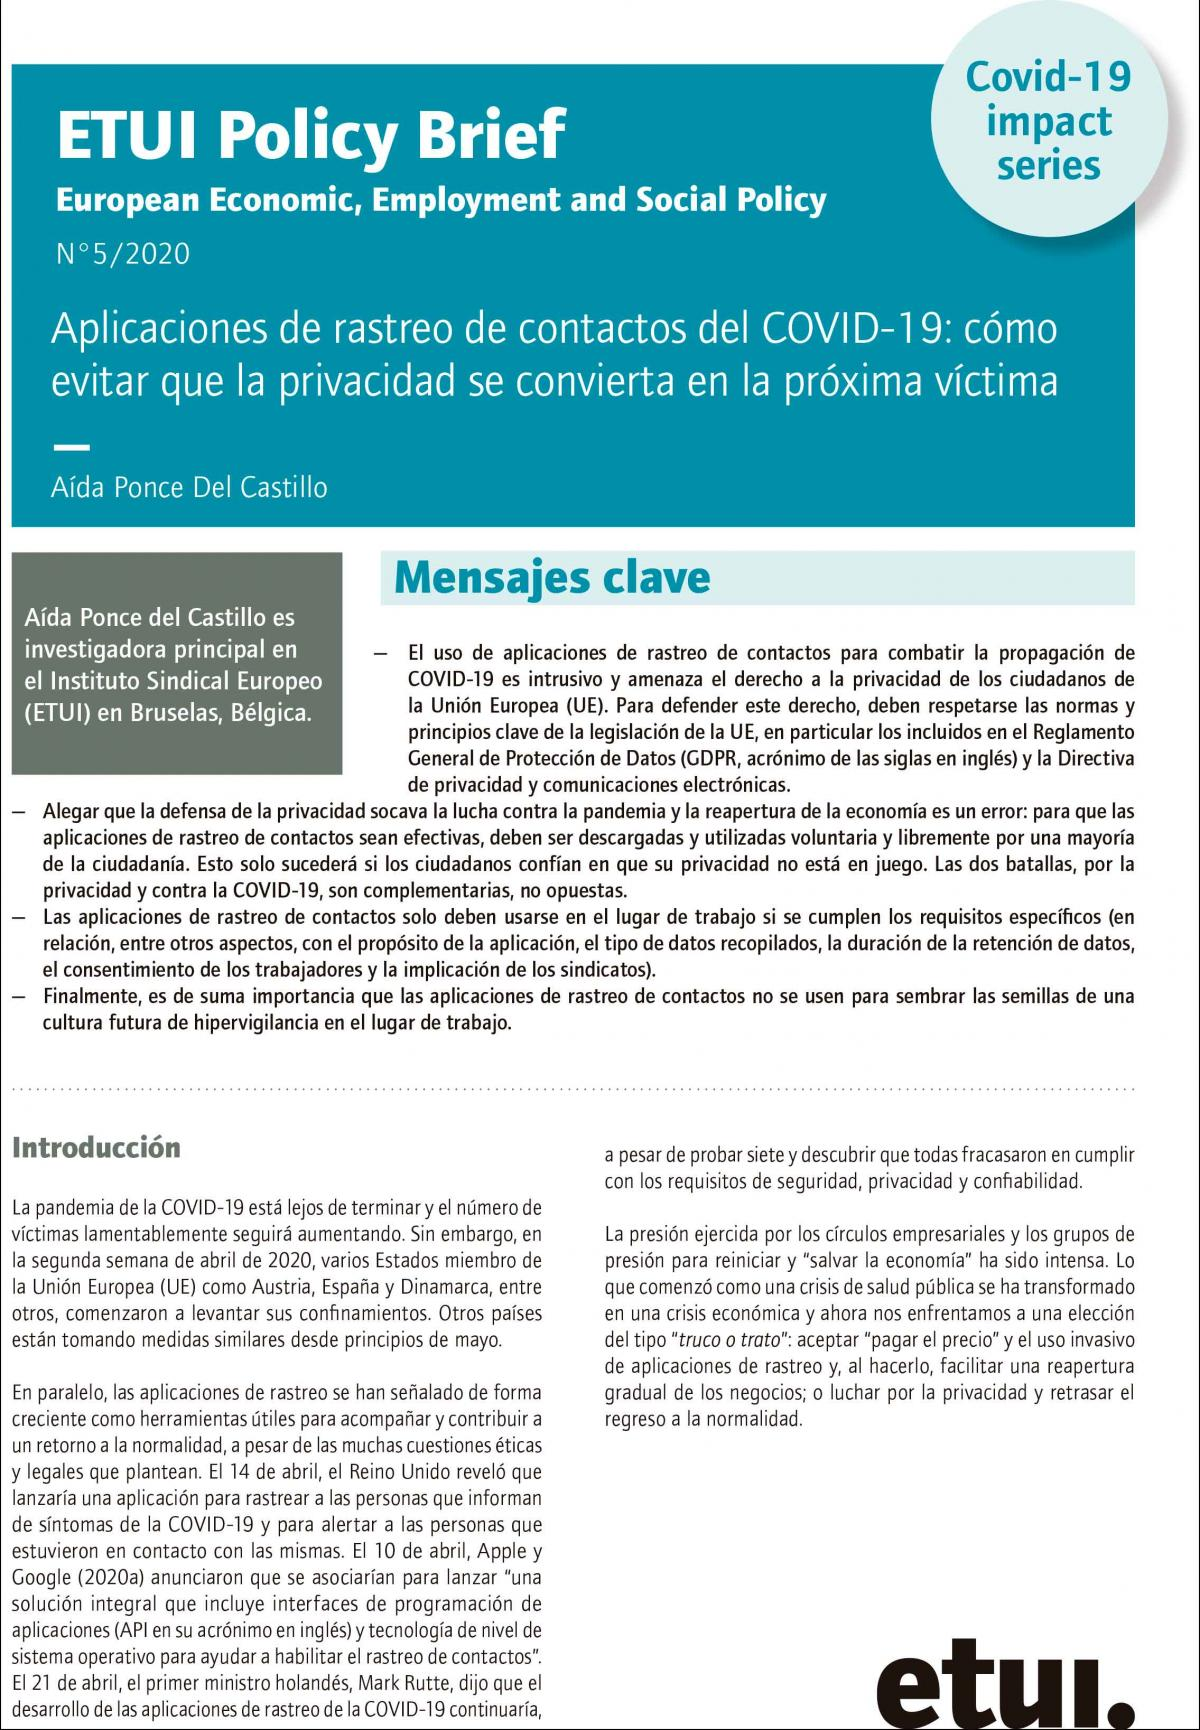 portada_policy_brief_covid_19_etui_5_2020